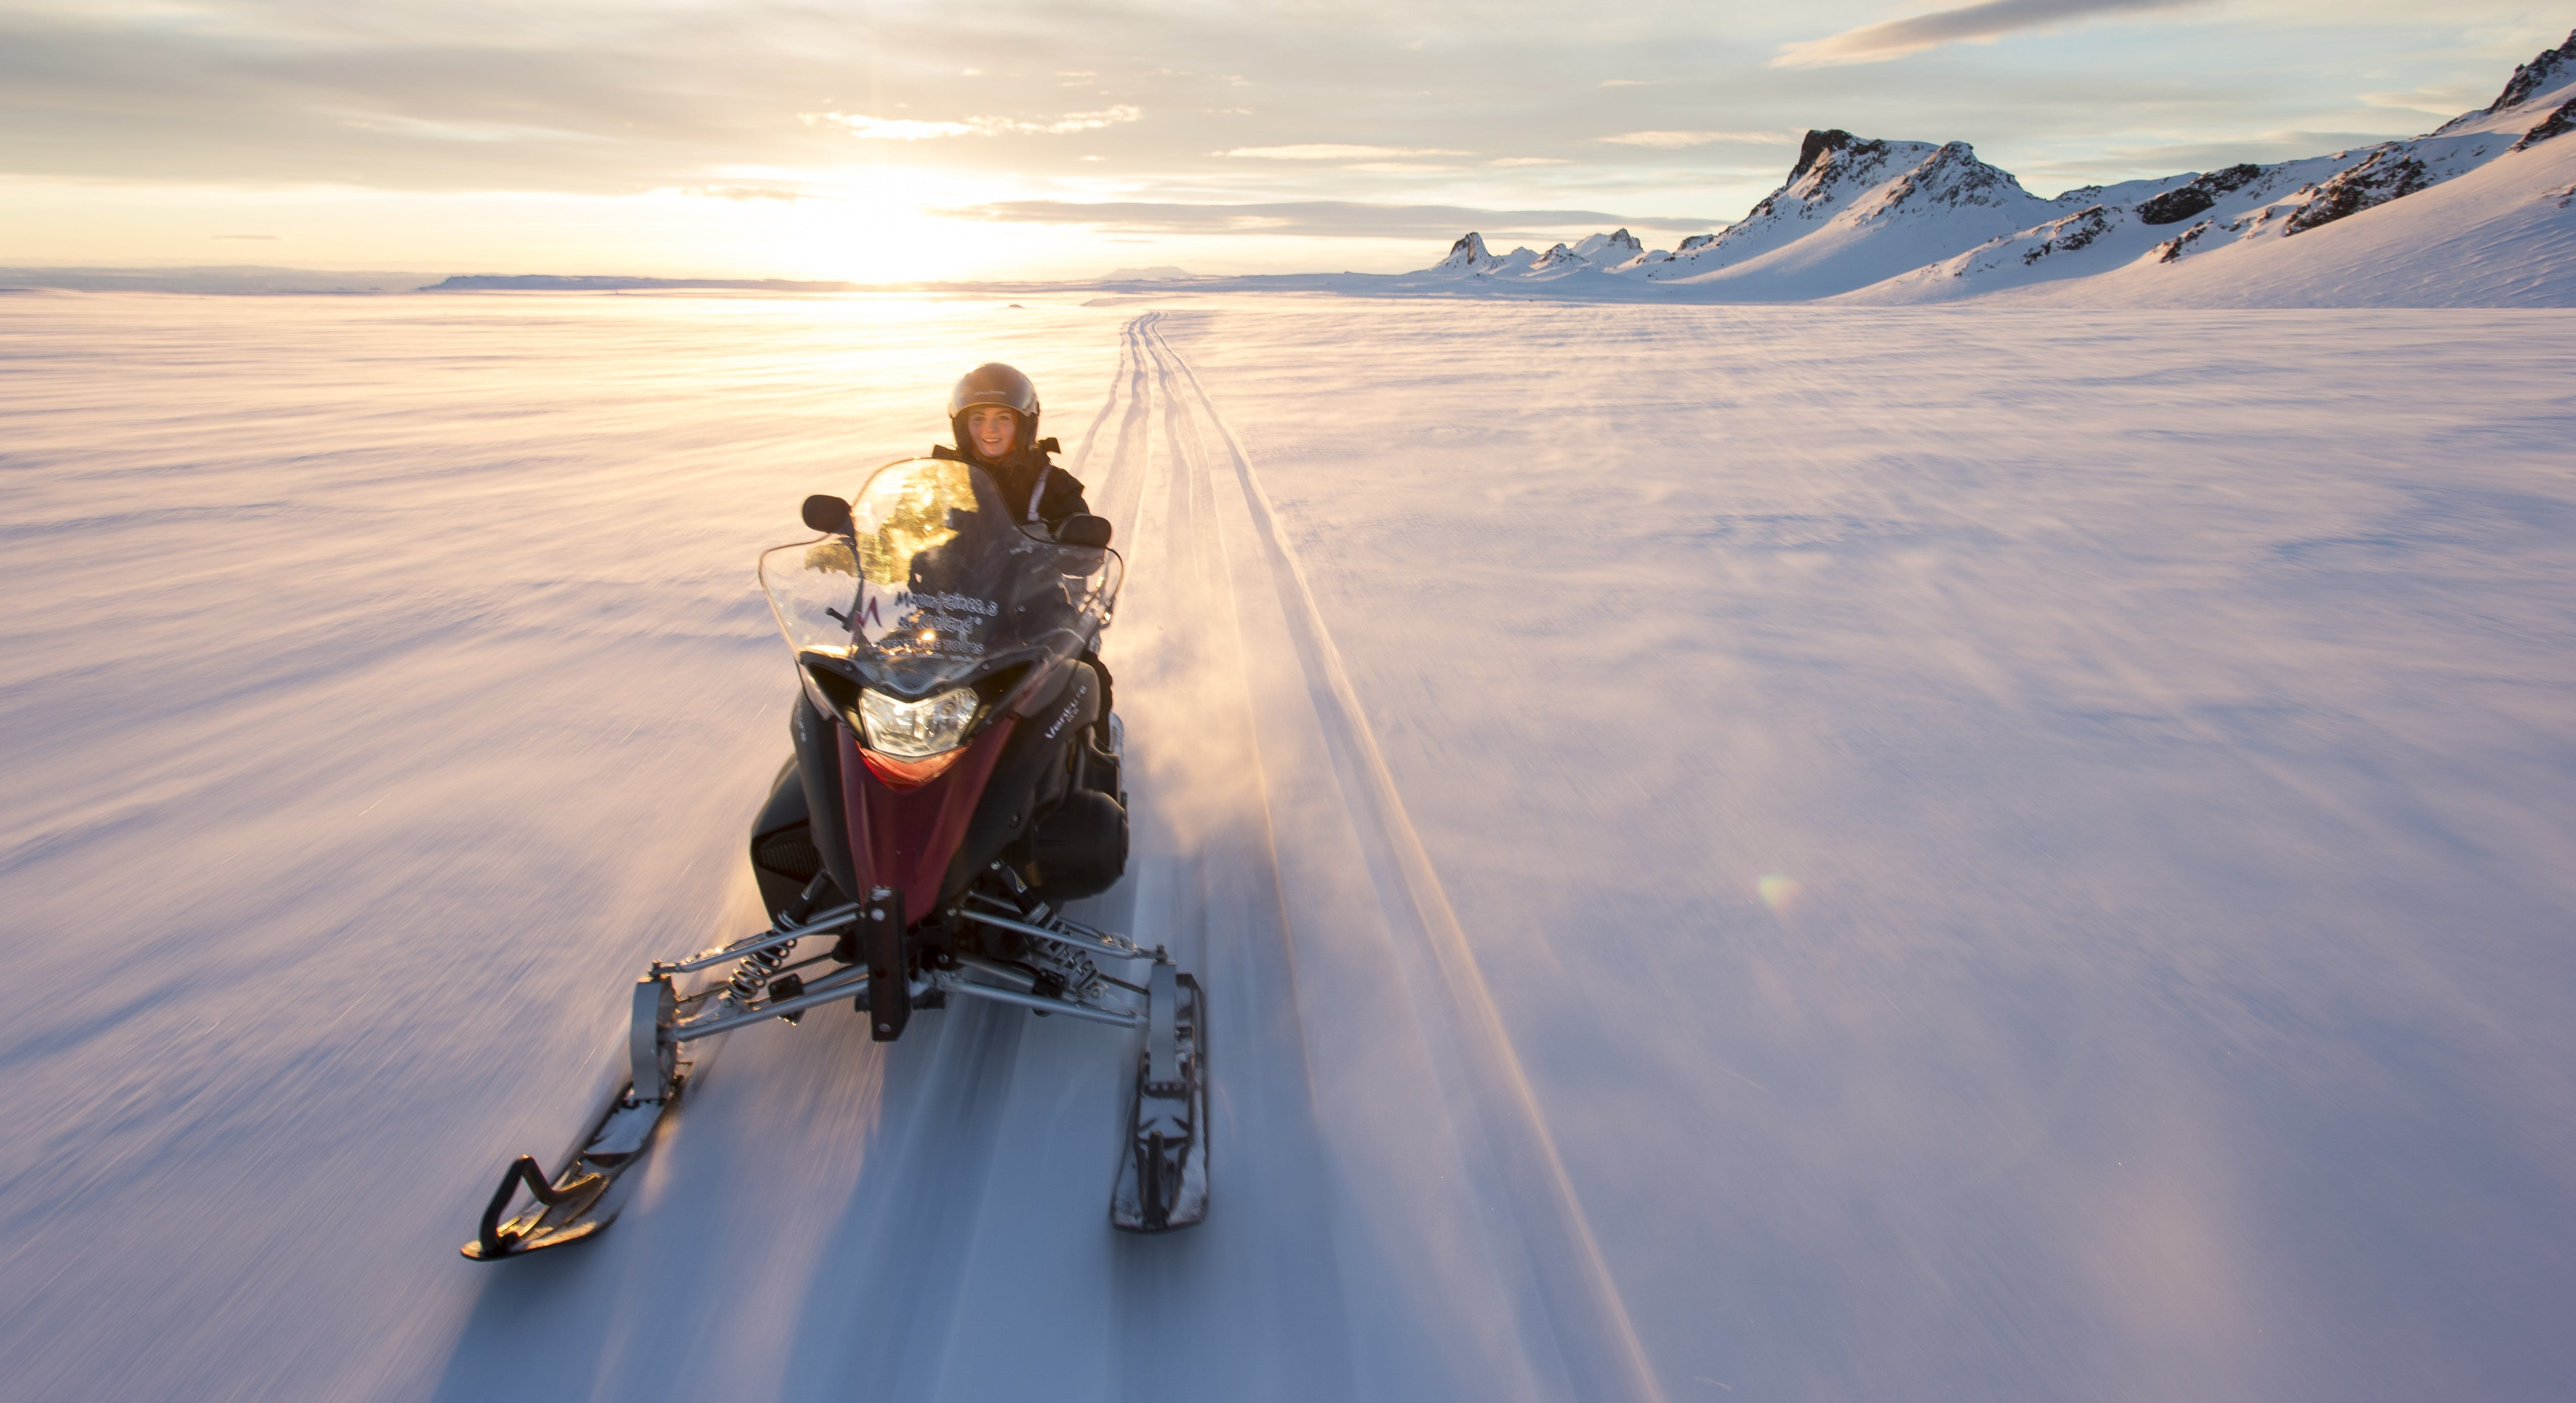 3 in 1 Bundled Discount Activity Tours with Snowmobiling, Glacier Hiking & Ice Caving - day 1